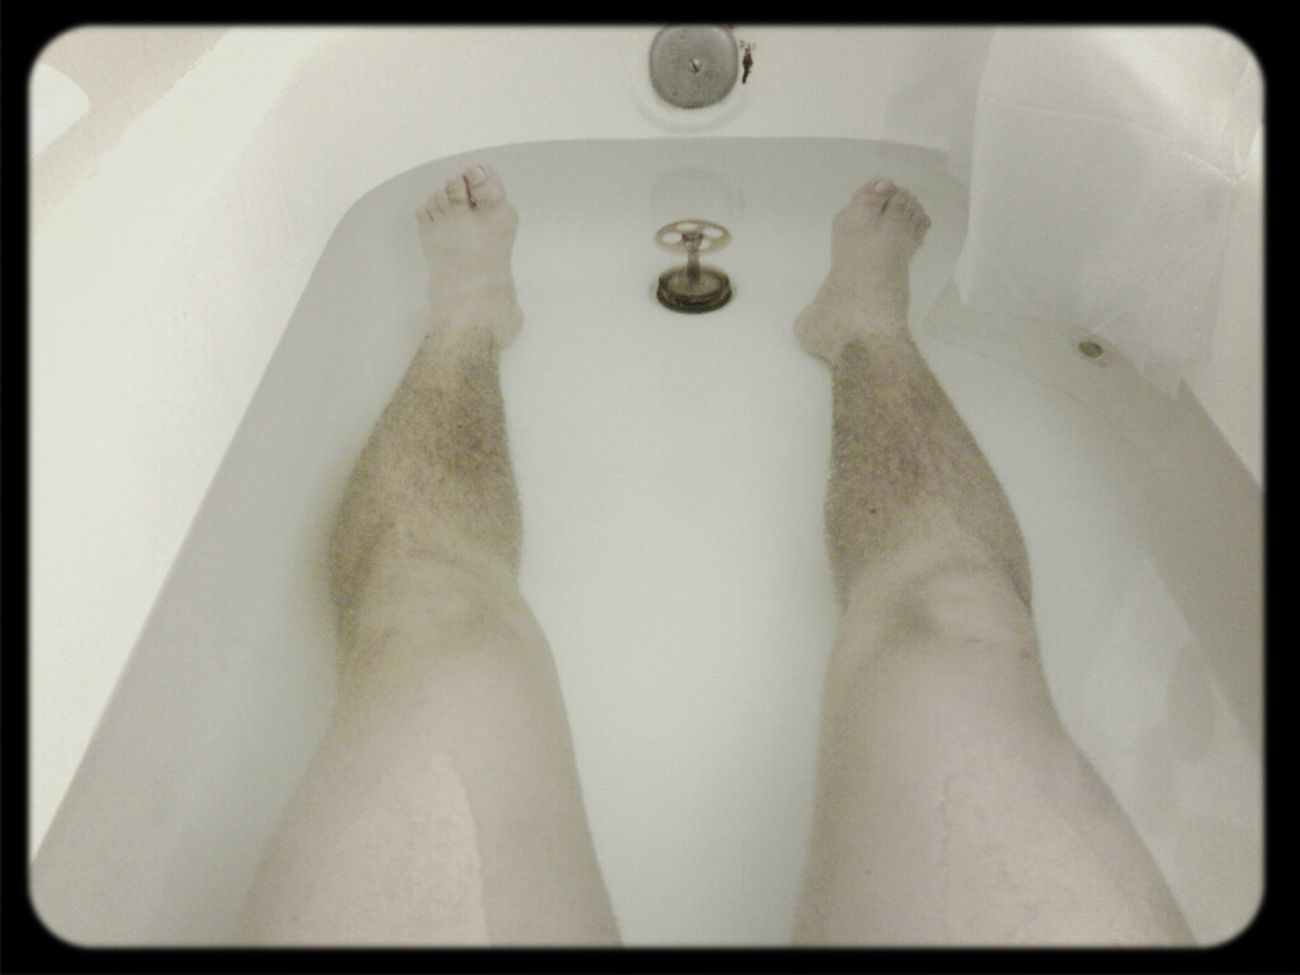 healing my legs everyday #DailyColdBath